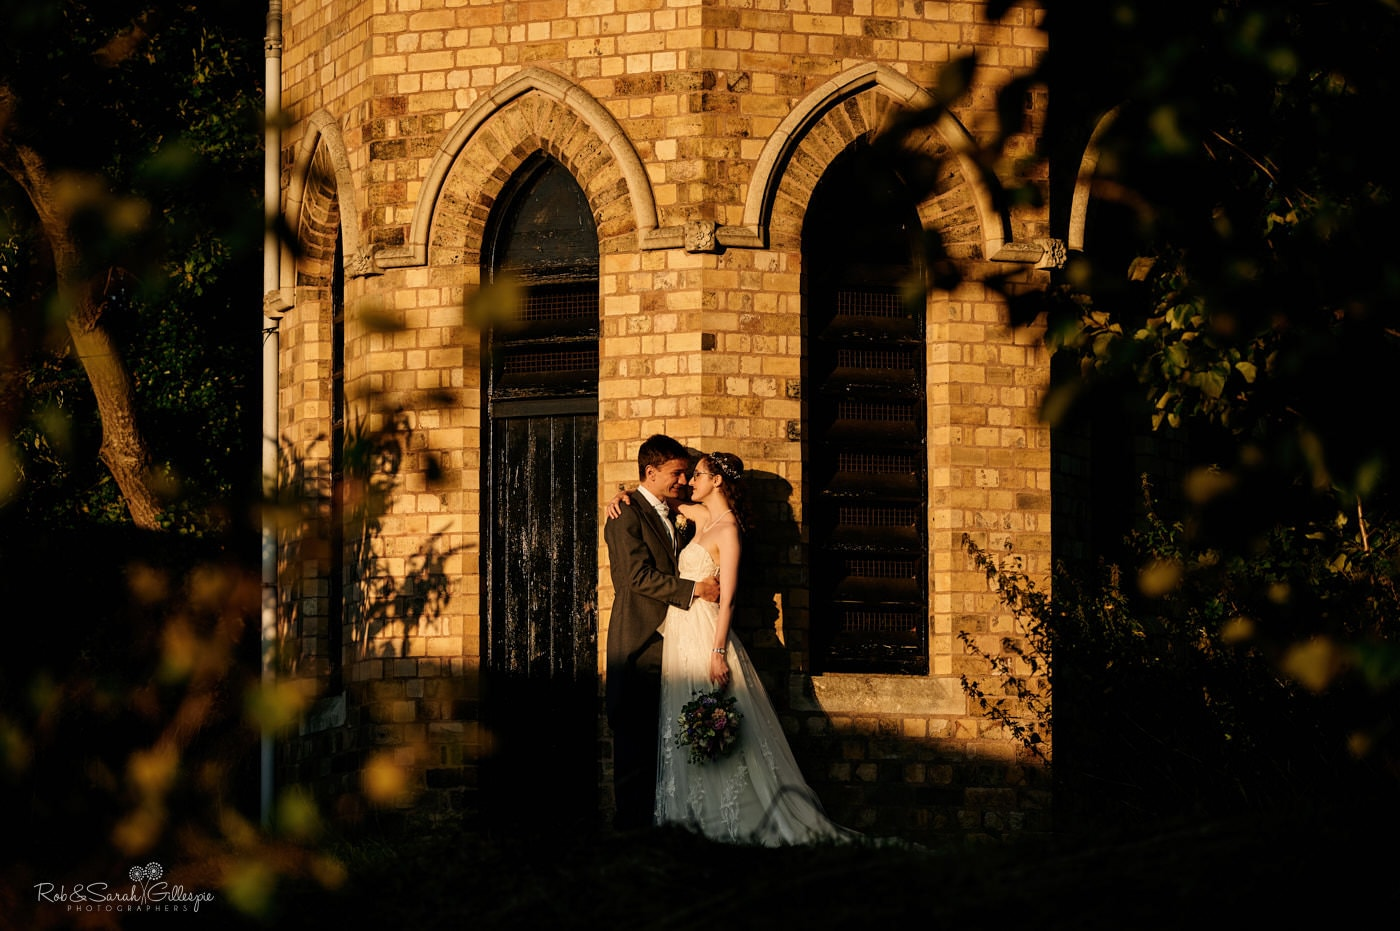 Bride and groom together outside building at Avoncroft Museum. Photographed by Avoncroft Museum Wedding Photographers Rob & Sarah Gillespie